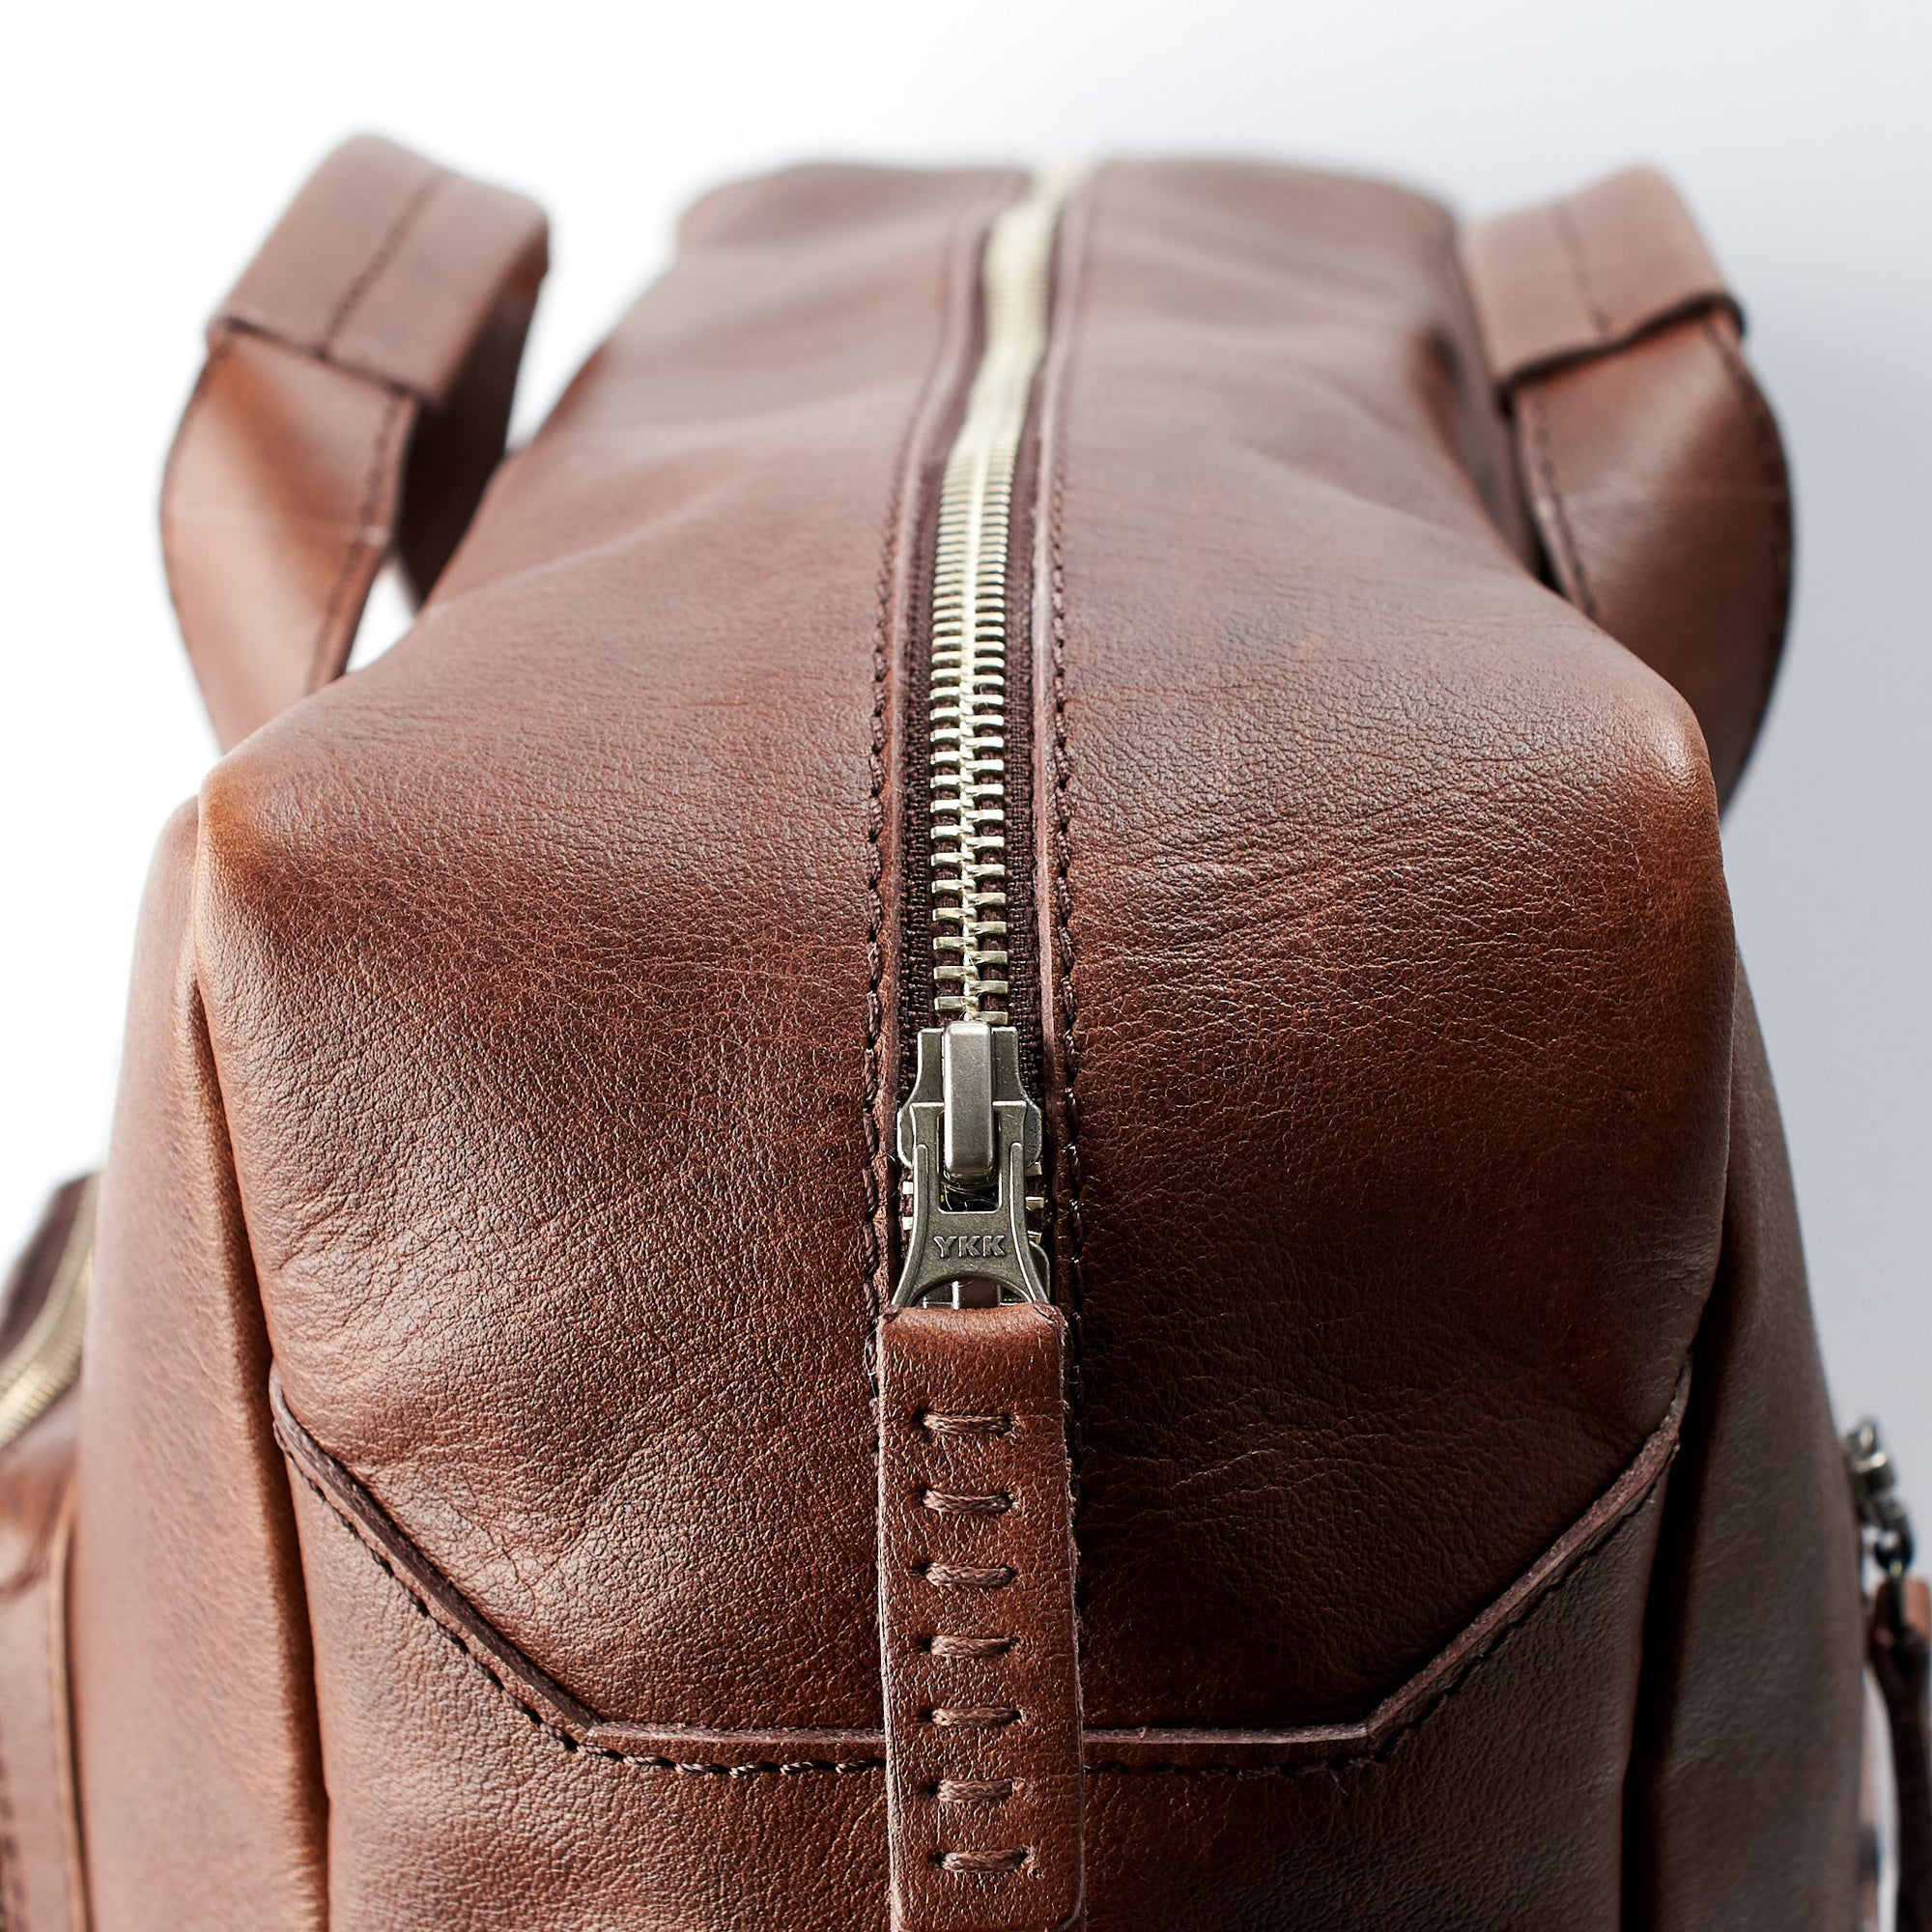 Zipper detail. Hand stitched pull tabs. Brown handmade leather messenger bag  for men. 2941b0d71b